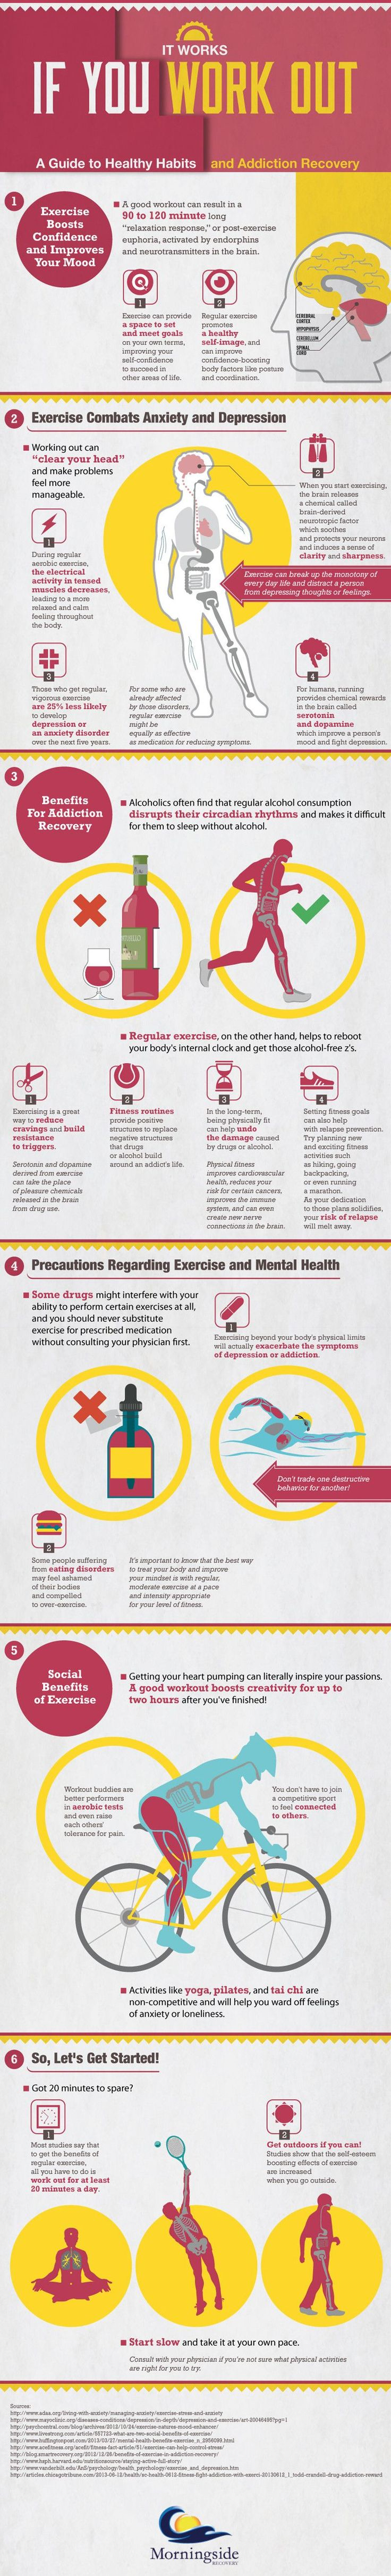 It Works If You Work Out: Exercise for Addiction Recovery